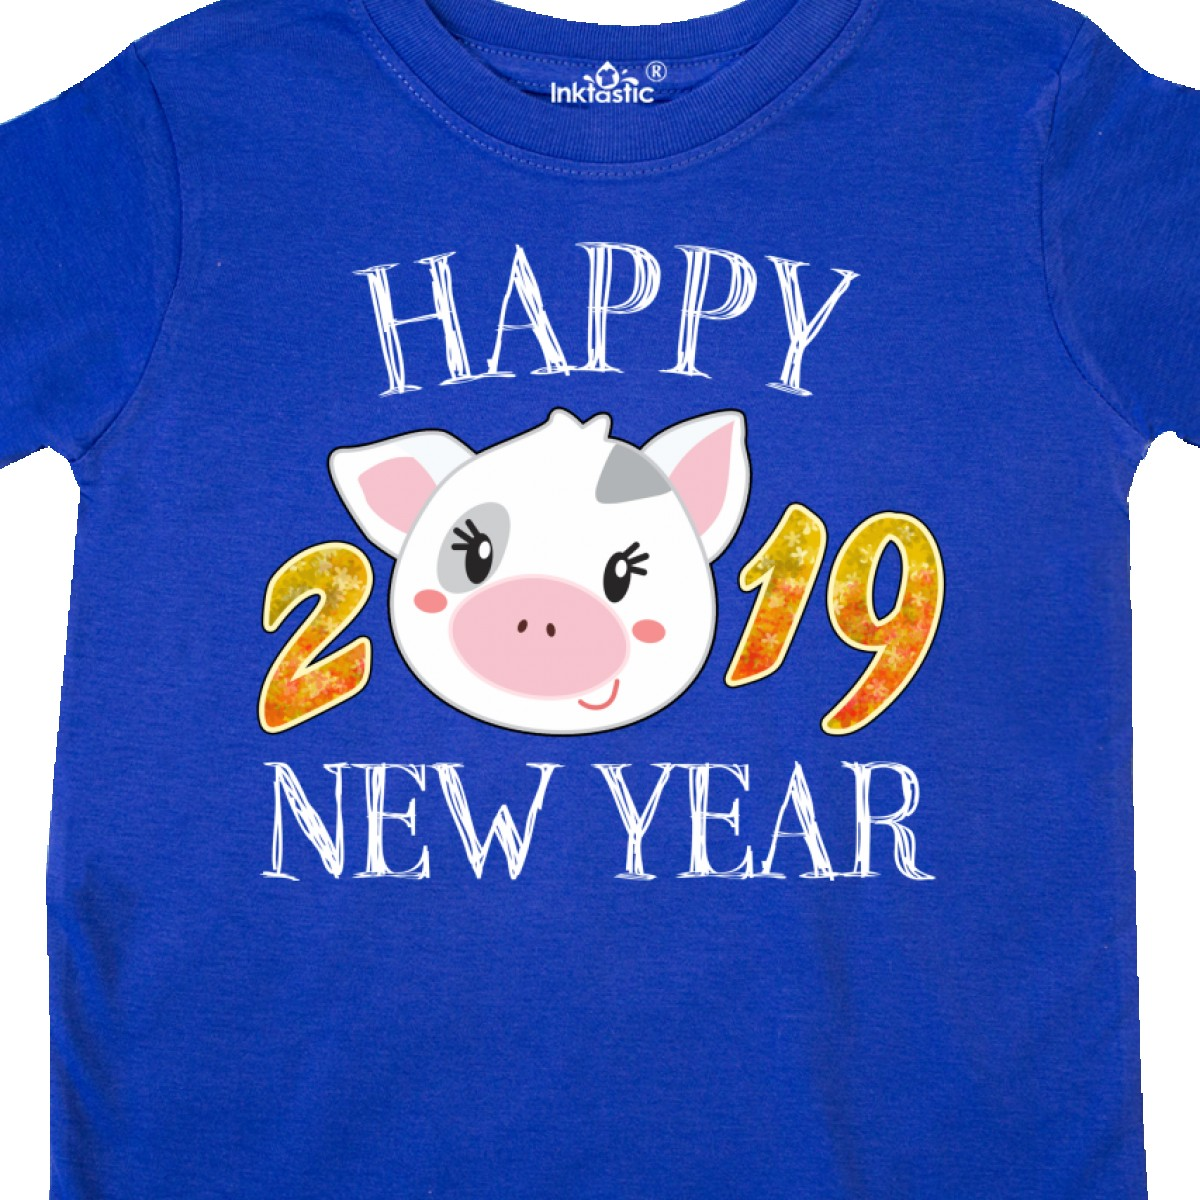 c662ba159 Inktastic Happy New Year 2019 Cute Pig Toddler T-Shirt Years Of ...